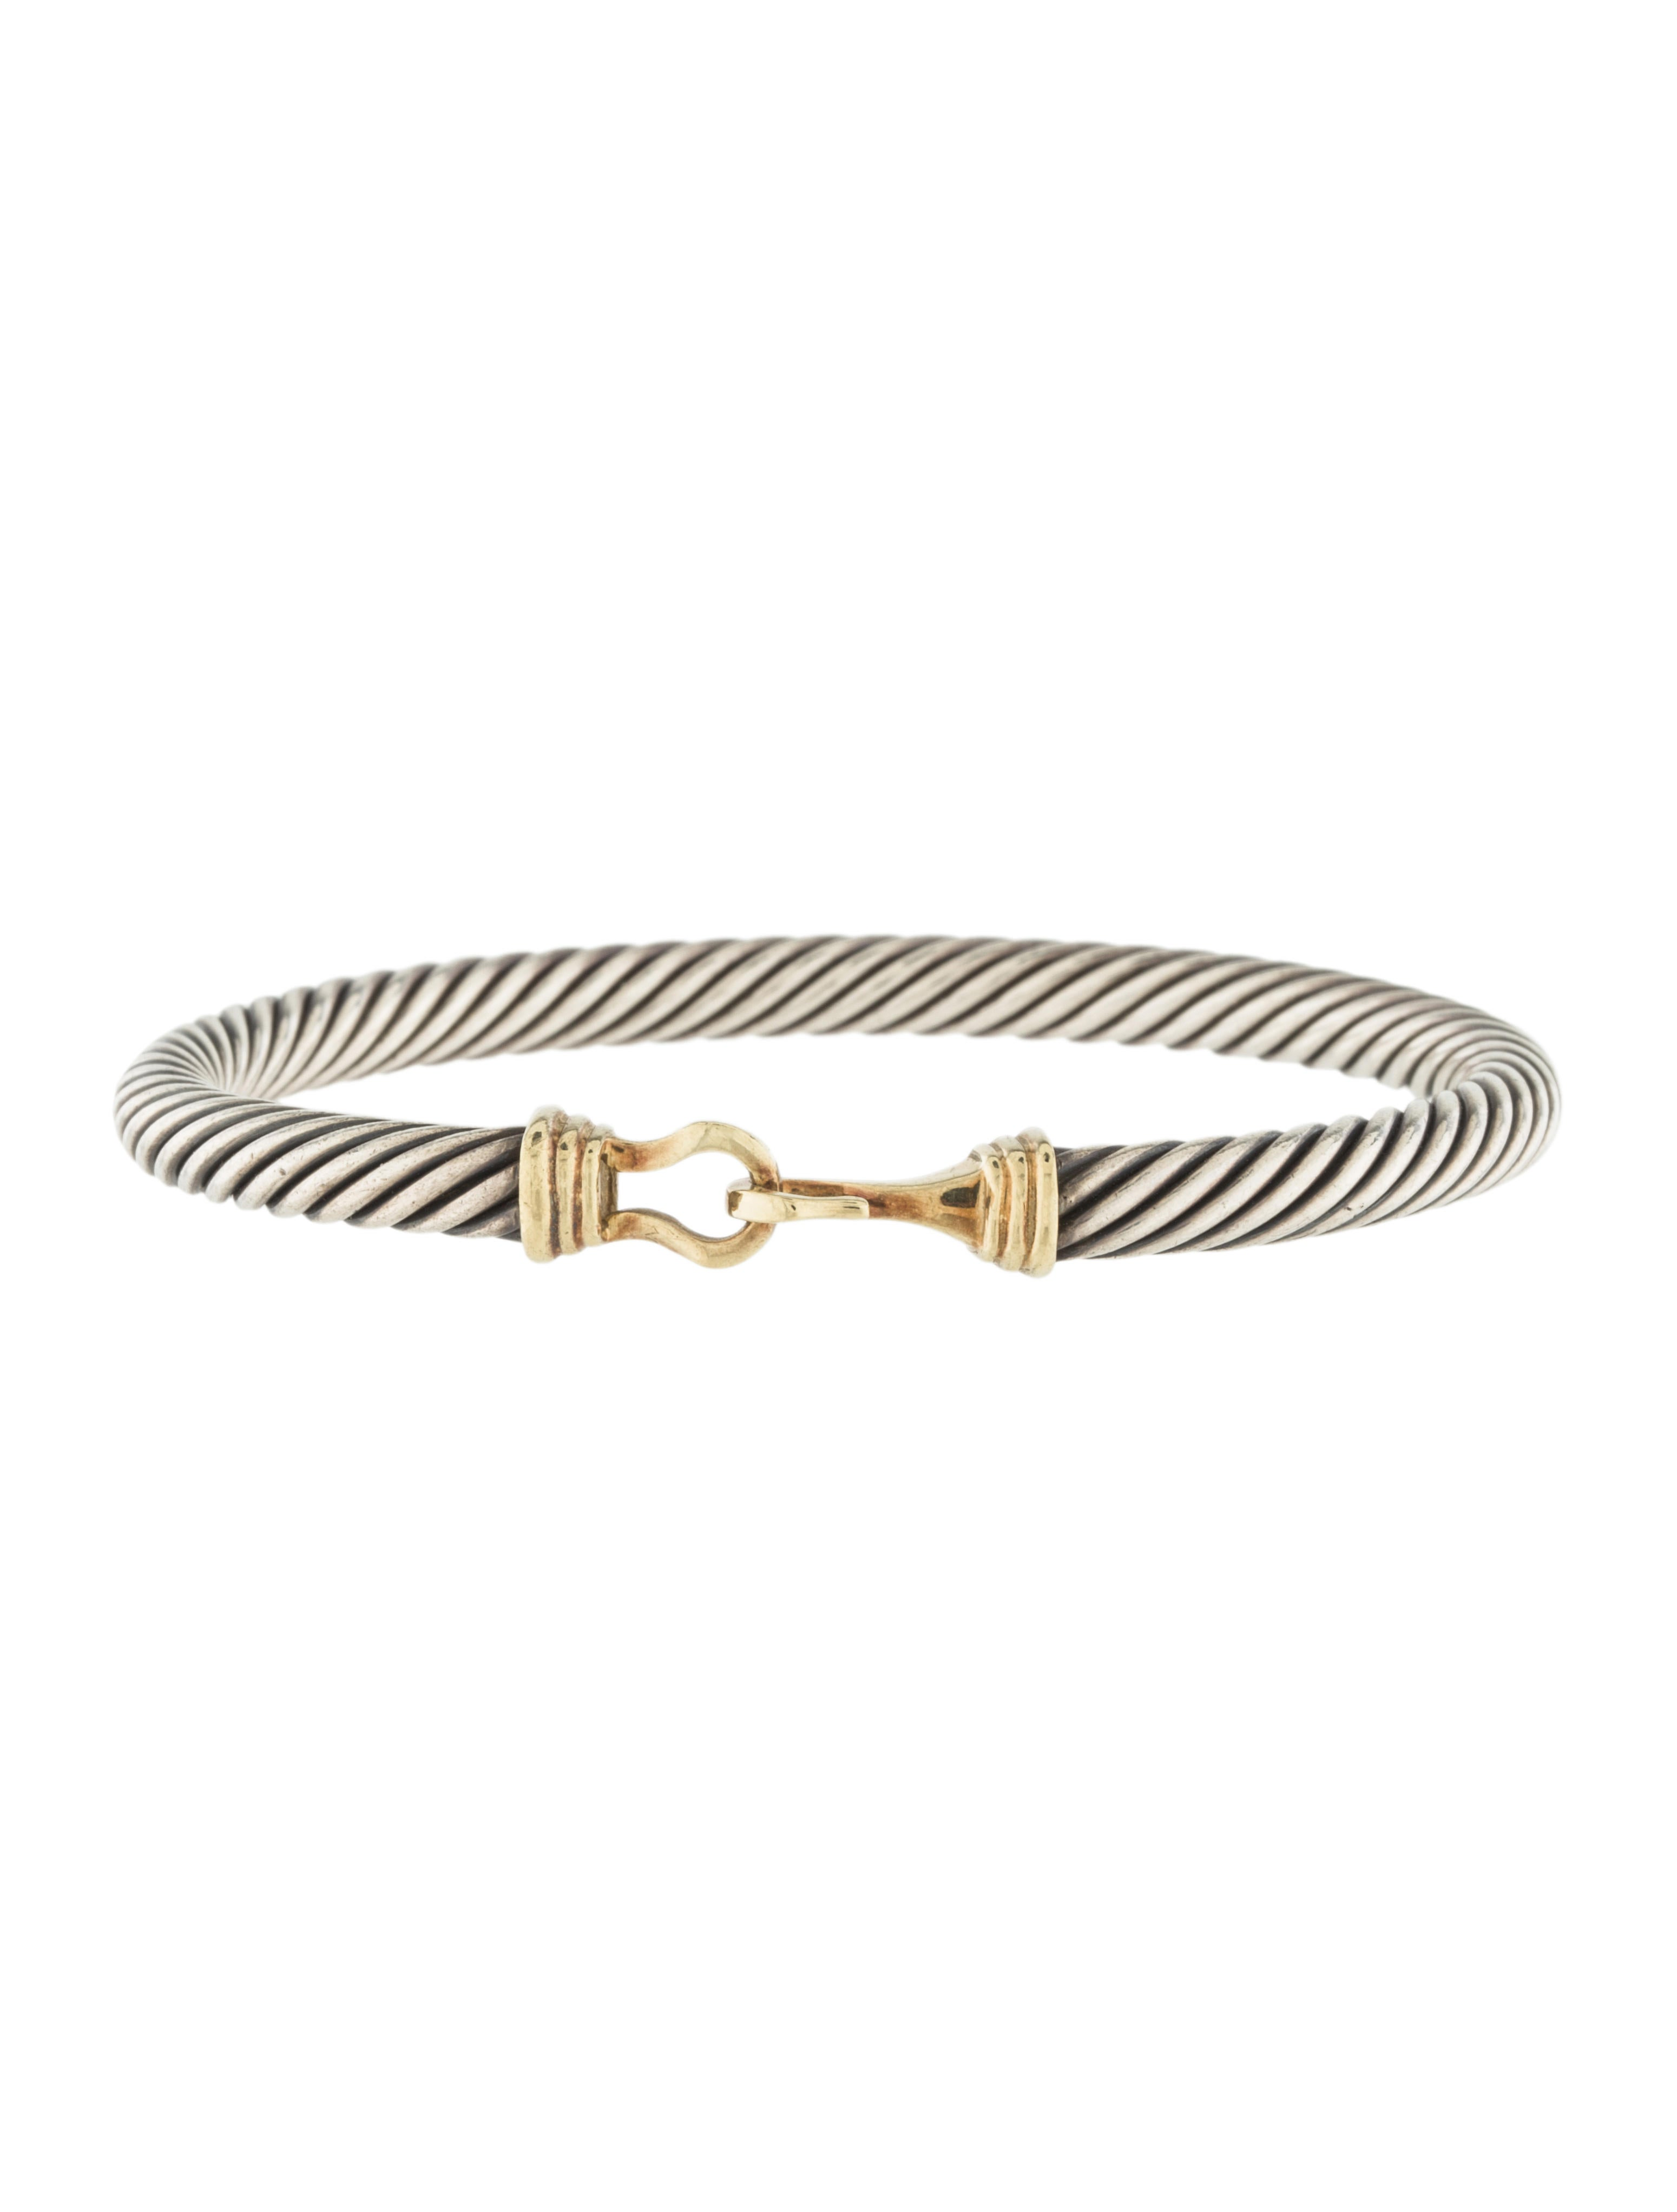 David yurman two tone cable buckle bracelet bracelets for David yurman inspired bracelet cable